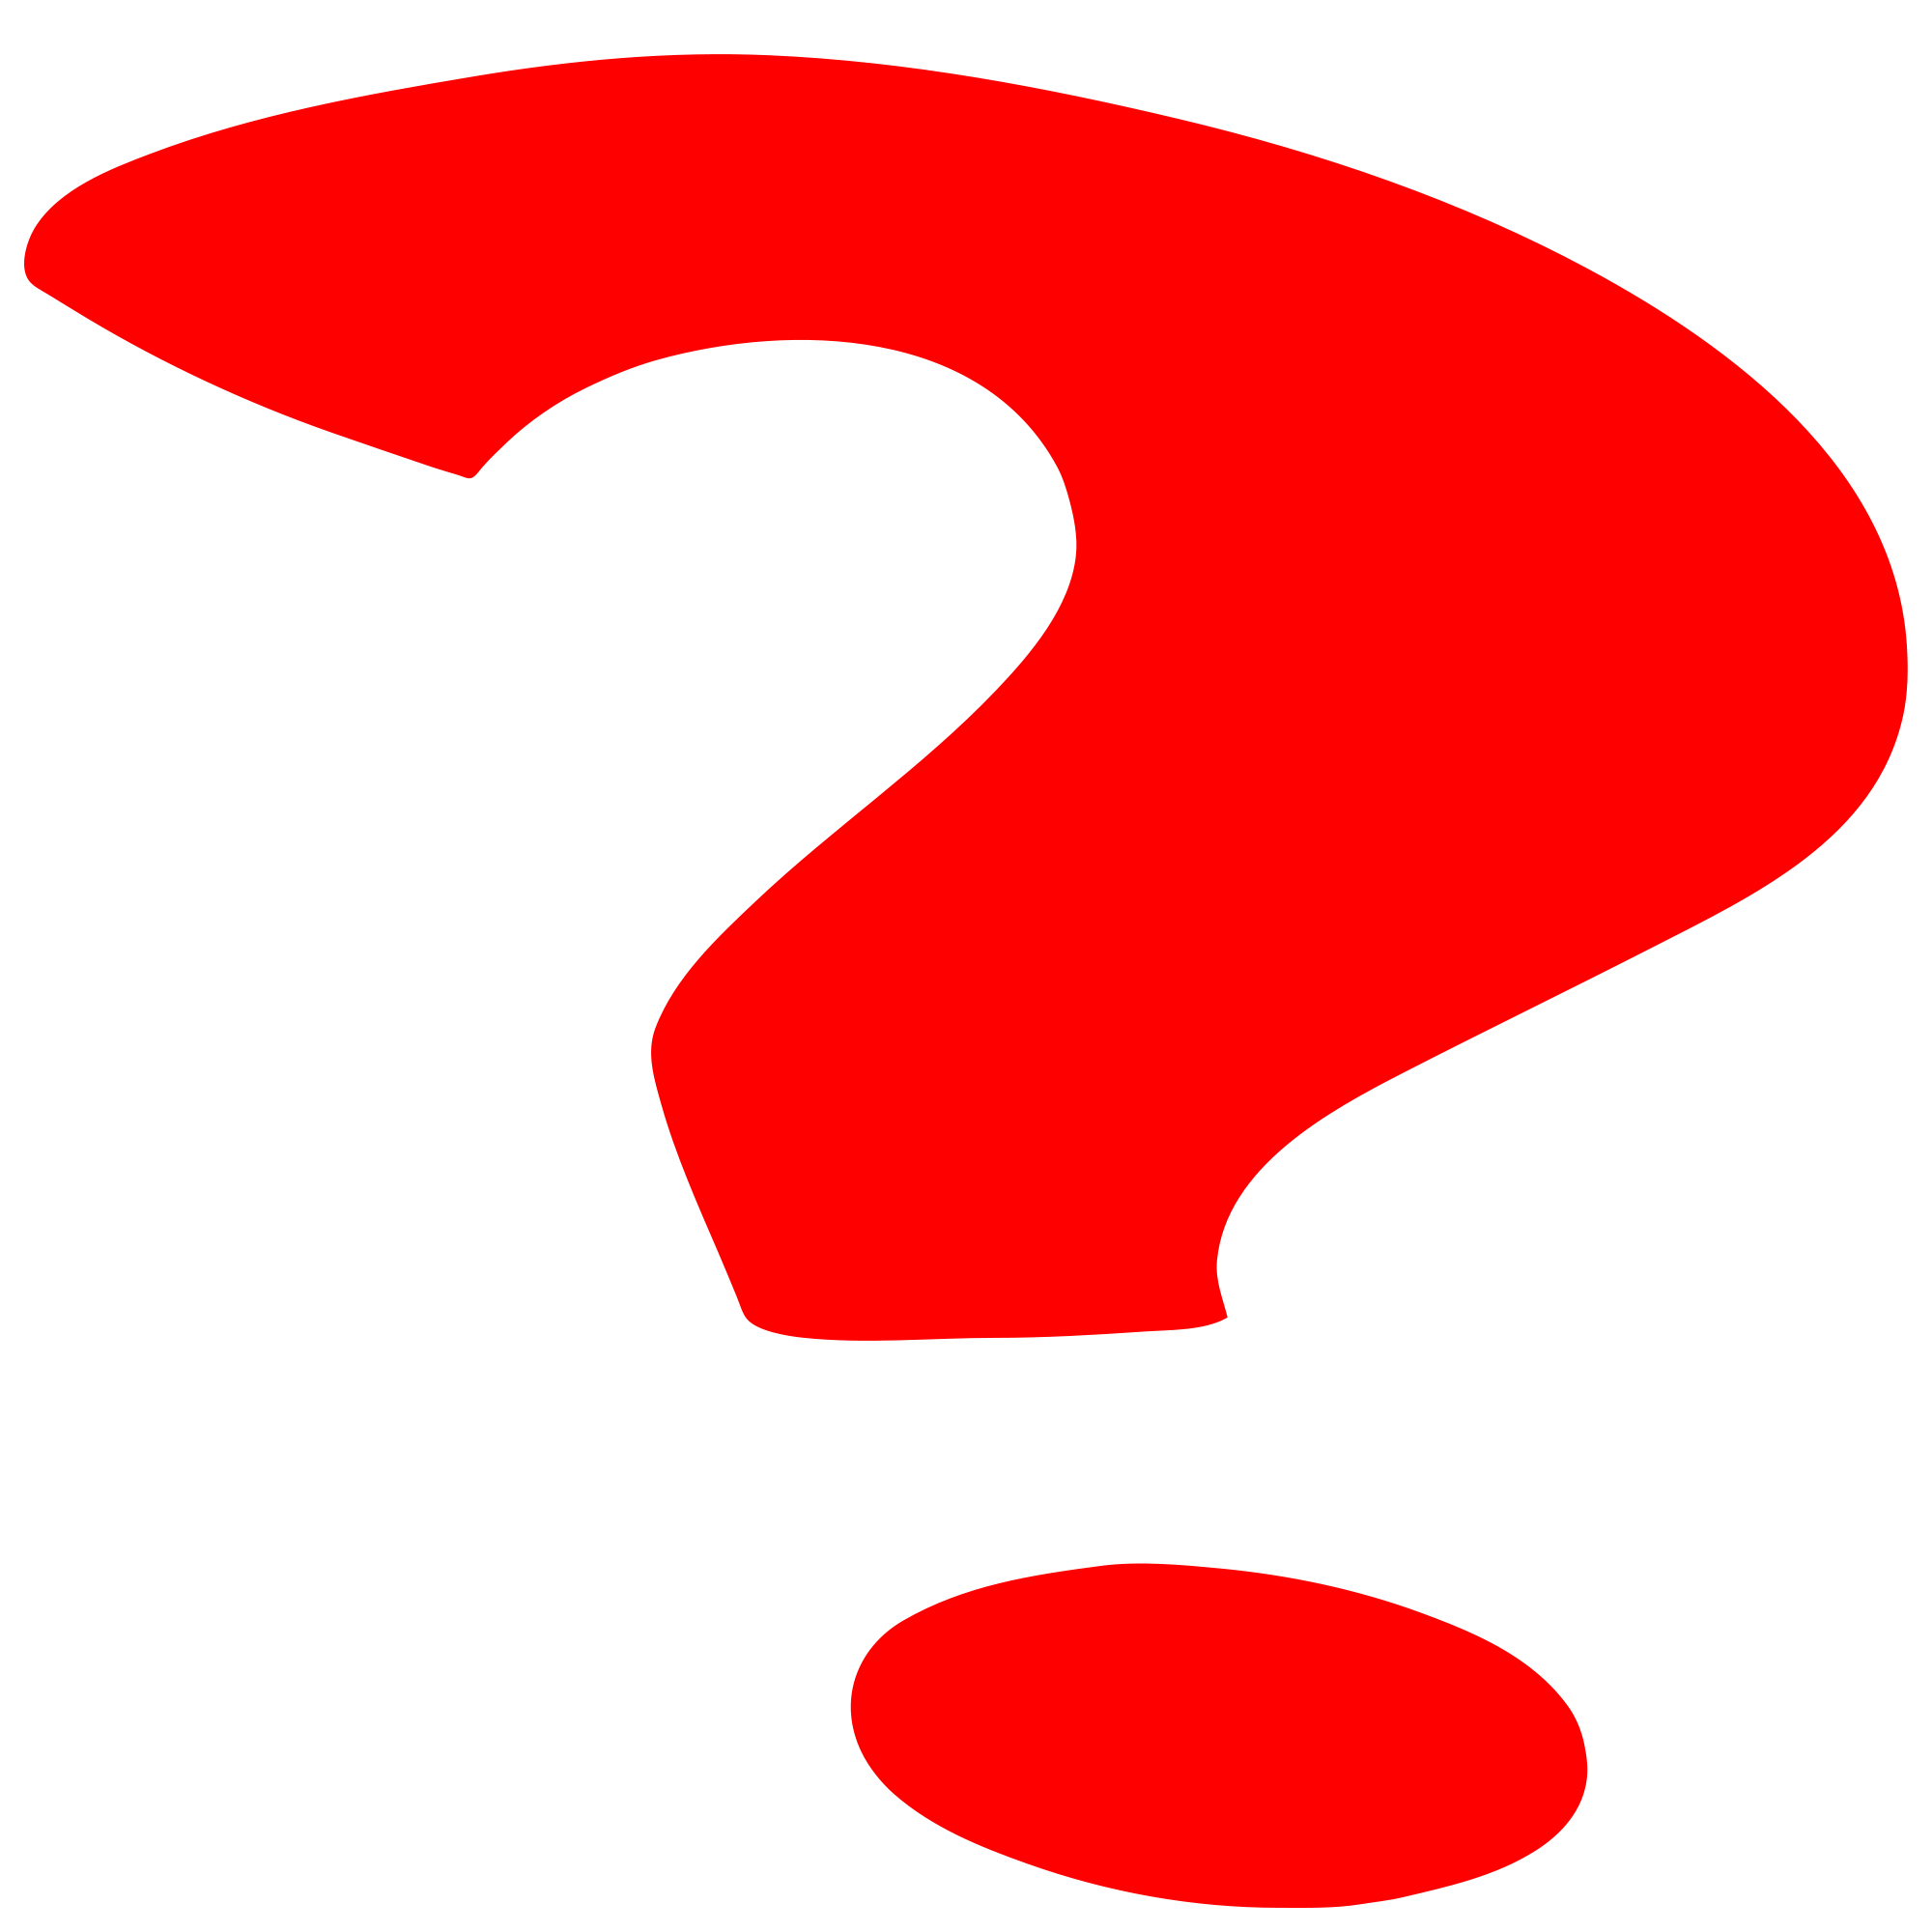 File:Red question mark.png